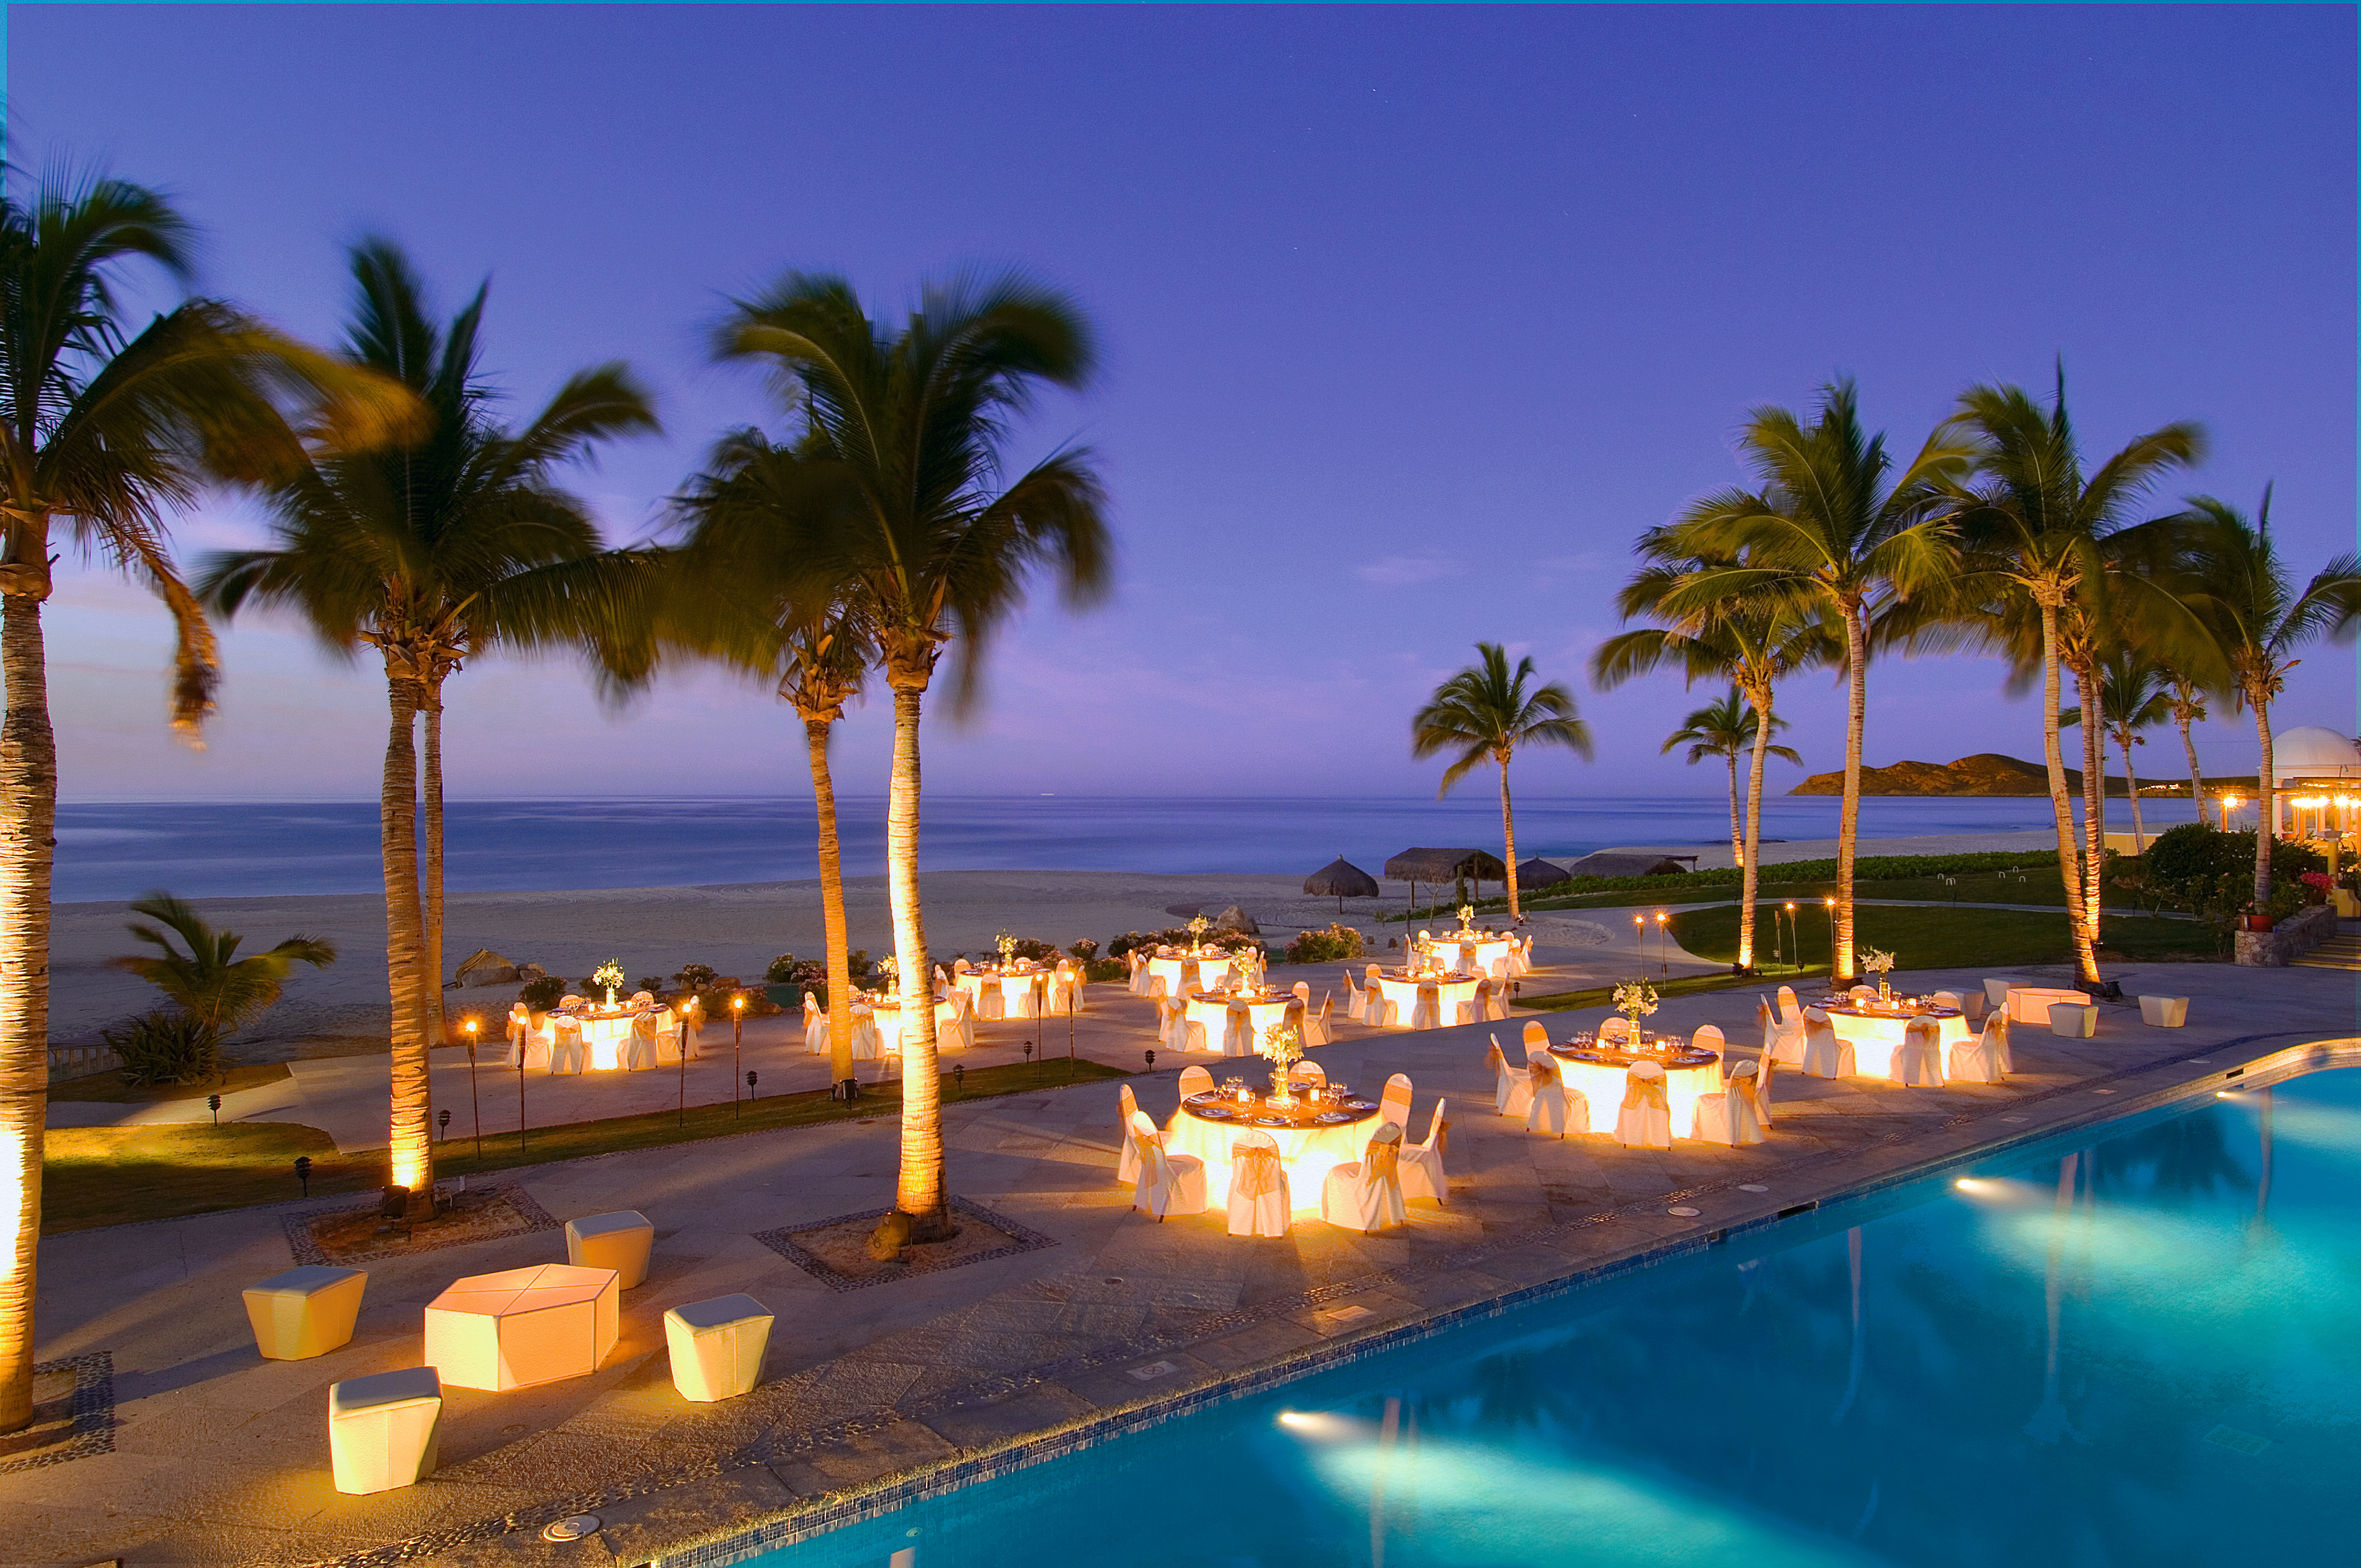 Travel Agency All-Inclusive Resort Dreams Los Cabos 56